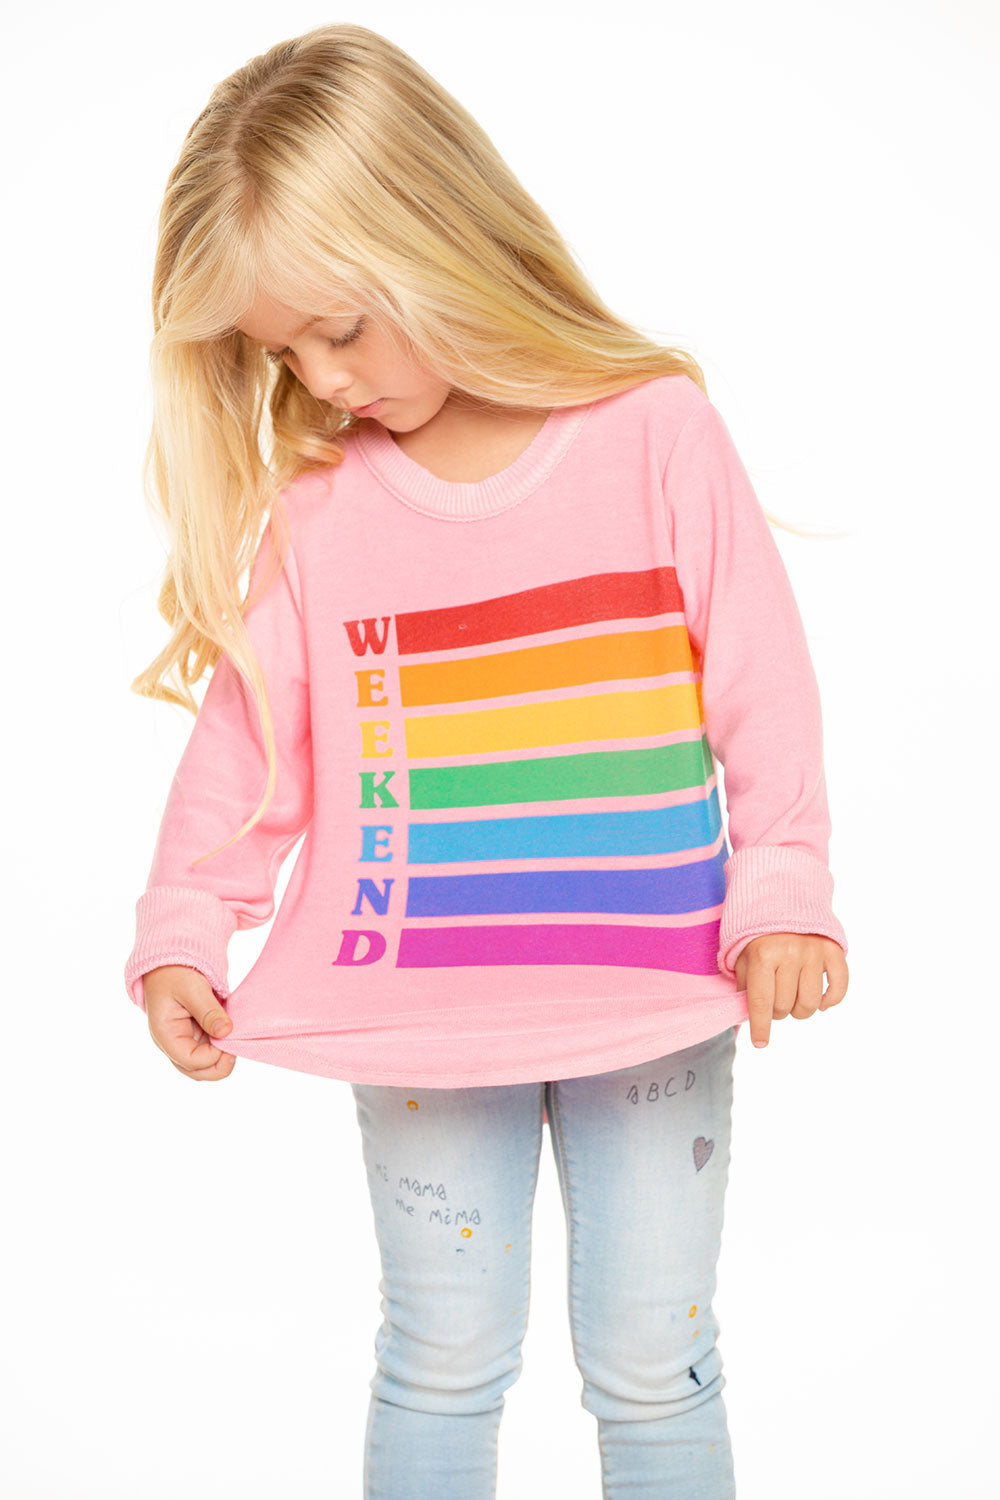 Childrens Love and Peace Sweater Boys Girls Printed Sweater